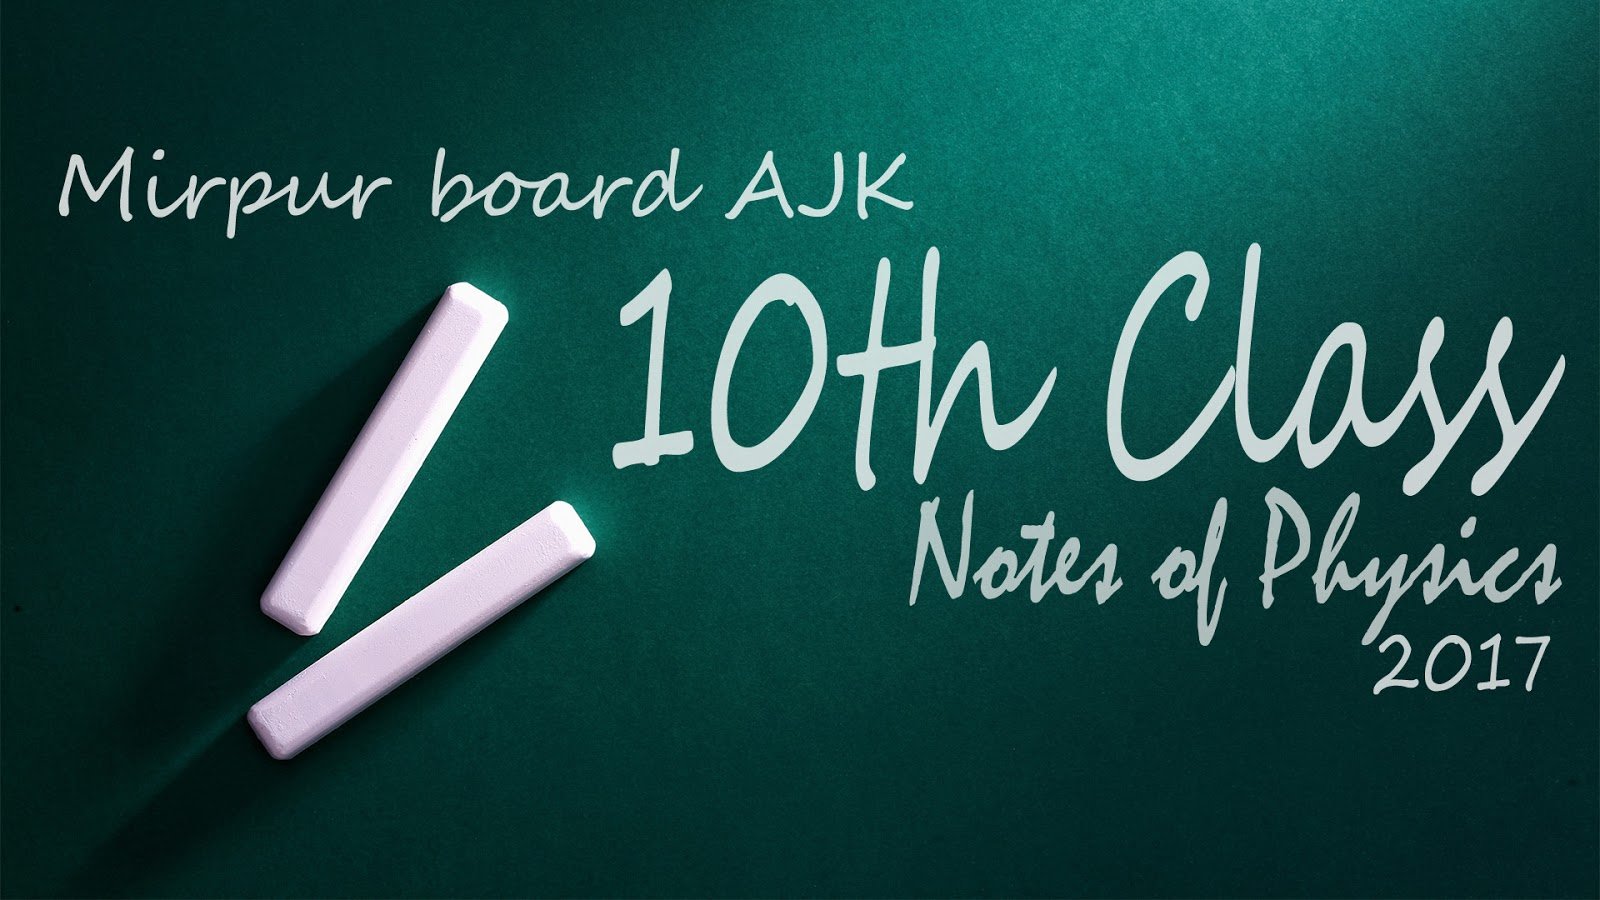 Ajk-Board-10th-class-notes-of-physics